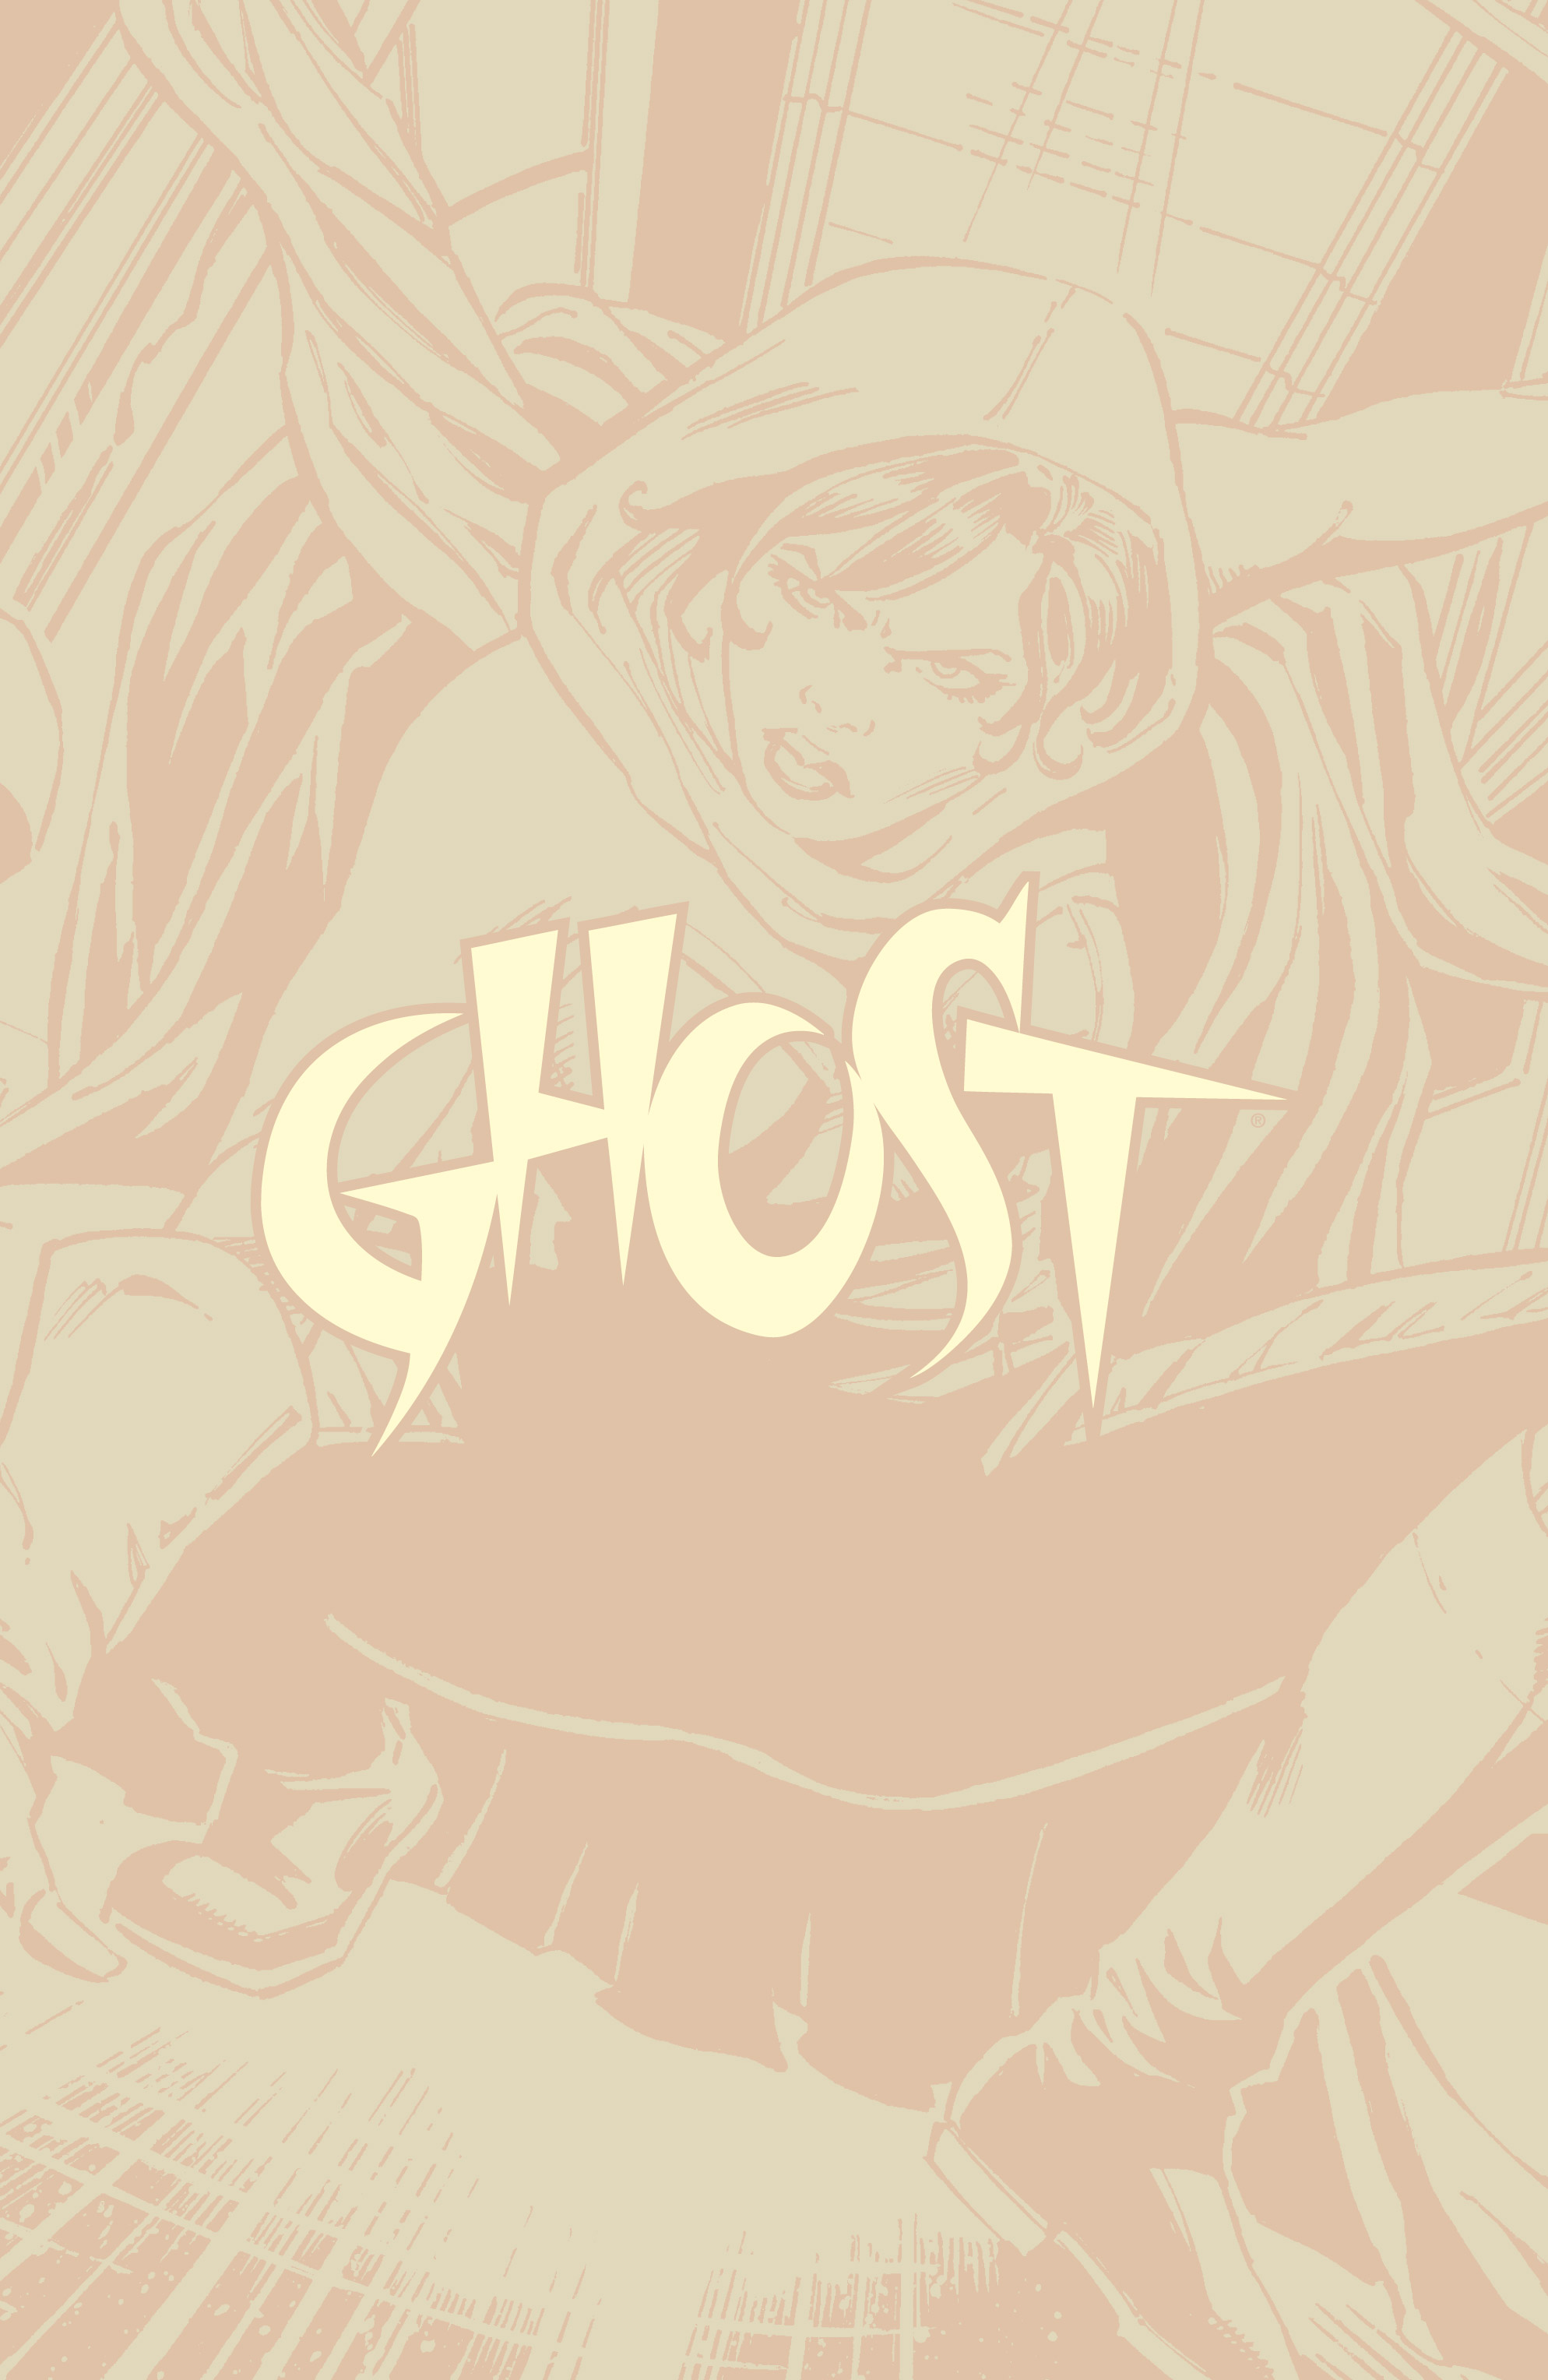 Read online Ghost (2013) comic -  Issue # TPB 2 - 31